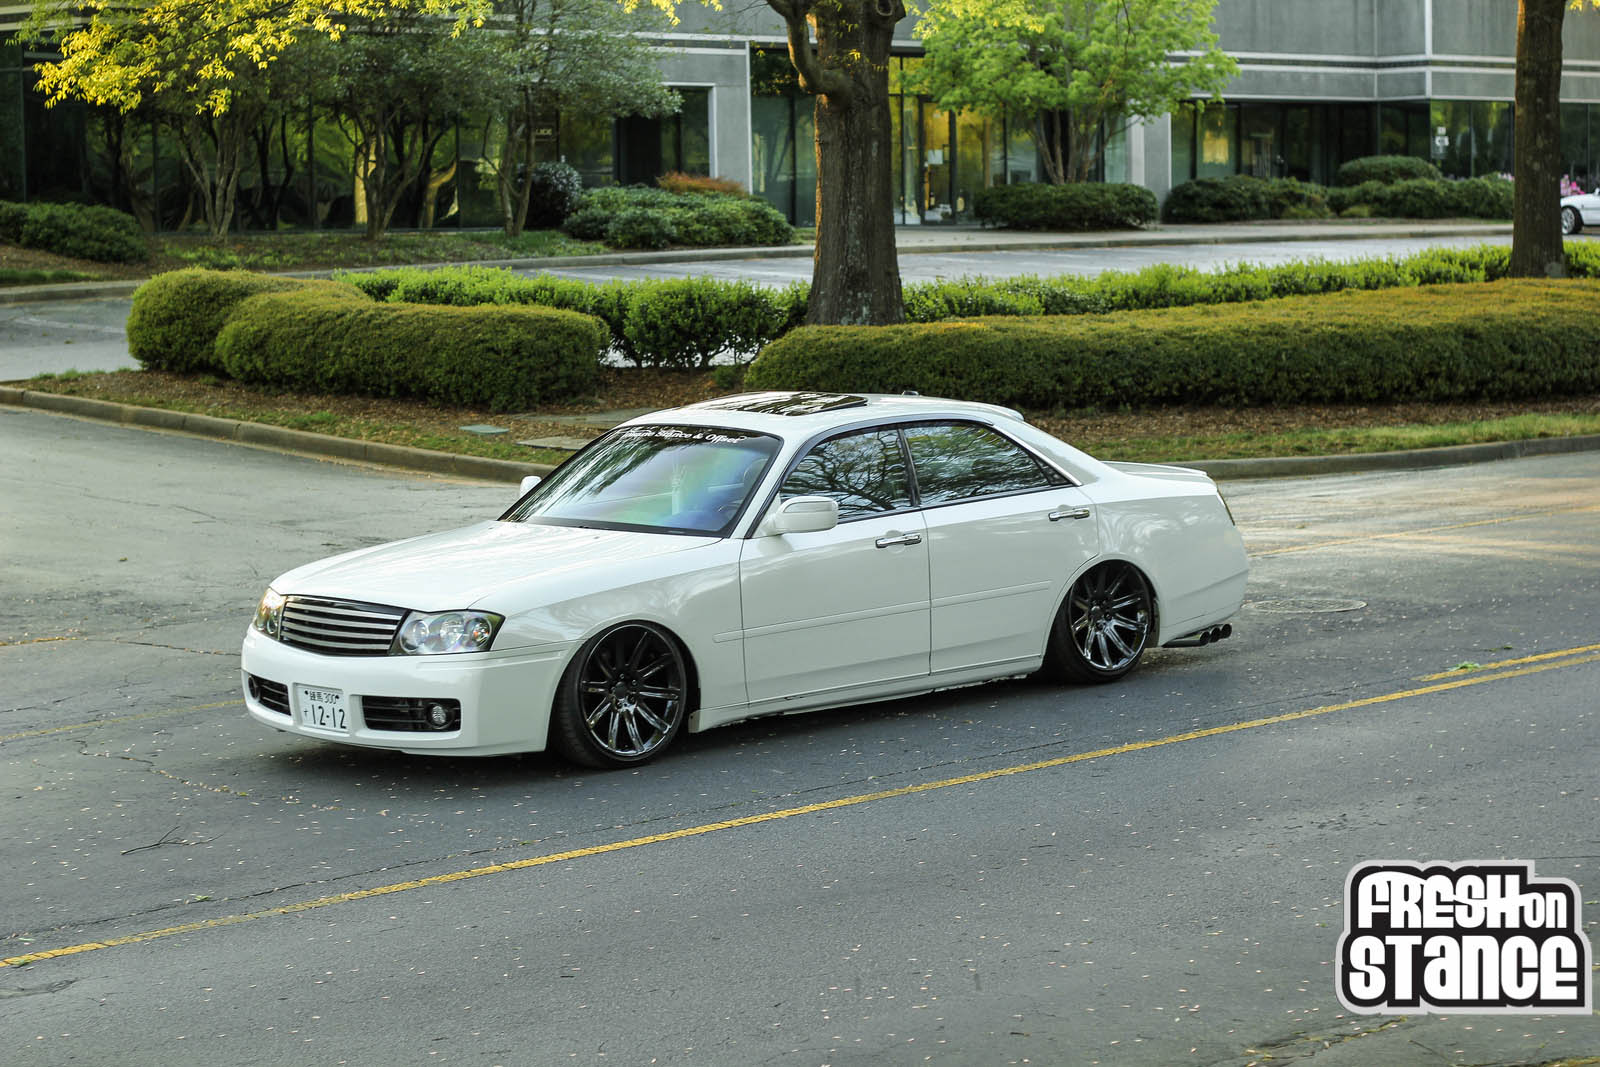 2003 infiniti m45 rims image collections hd cars wallpaper 2003 infiniti m45 information and photos zombiedrive 2003 infiniti m45 7 infiniti m45 7 vanachro image vanachro Gallery